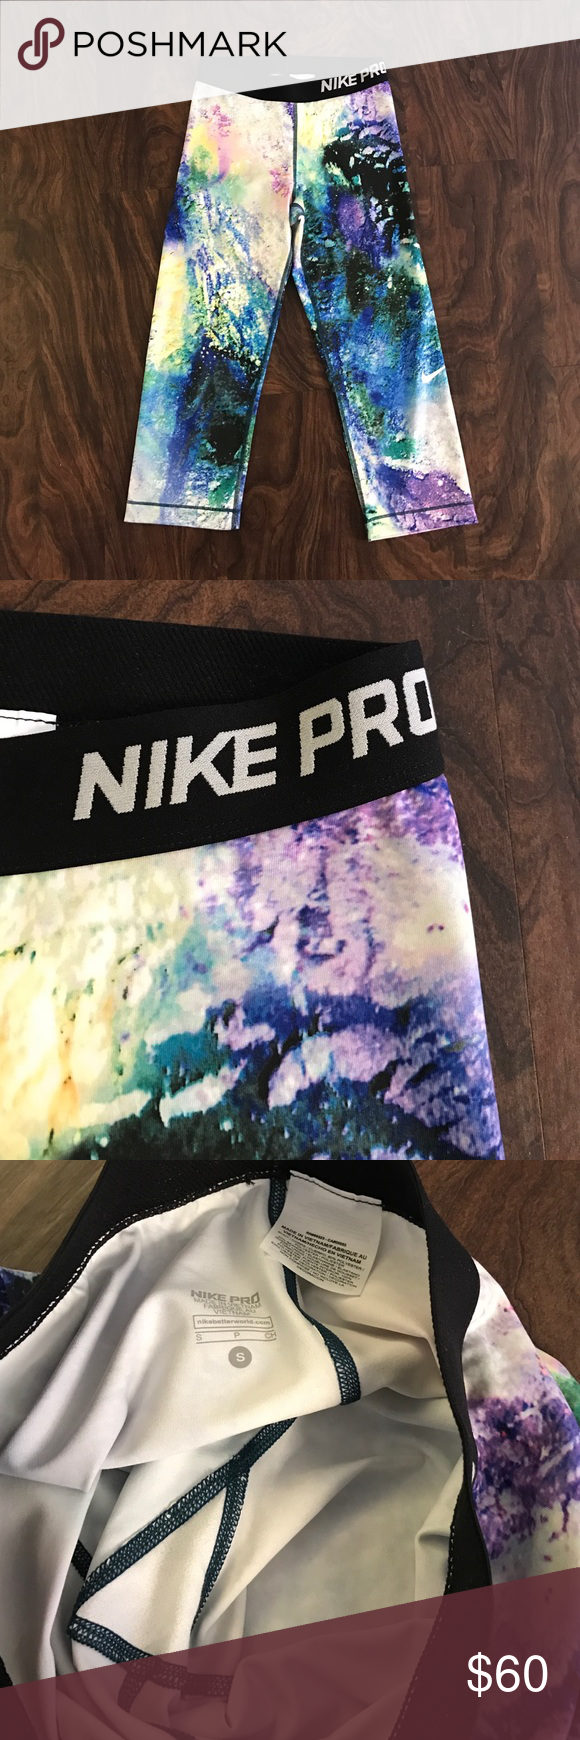 Nike Pro Cropped Leggings Nike Pro cropped leggings - size small. Galaxy print. Excellent condition! Nike Pants Leggings